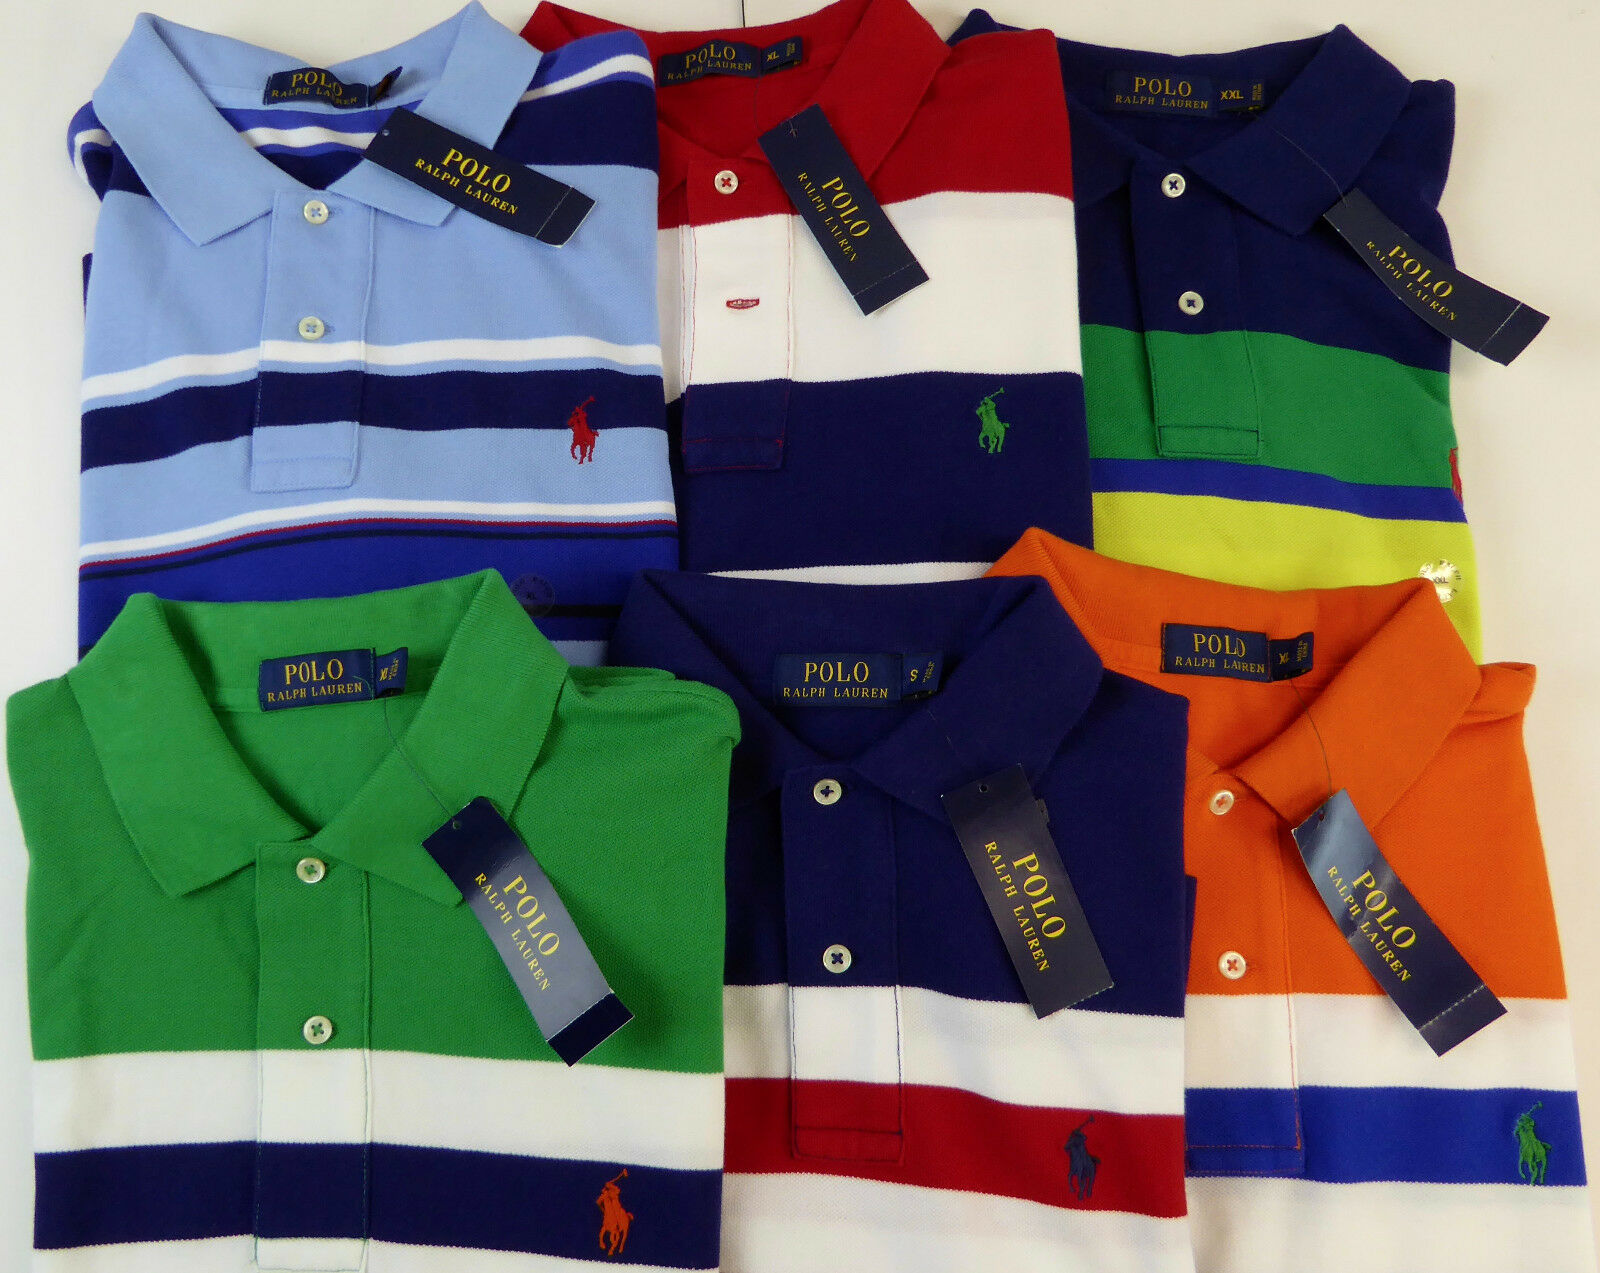 Polo Ralph Lauren SS Multi Striped 100% Cotton Mesh Polo Shirt  NWT  6 colors